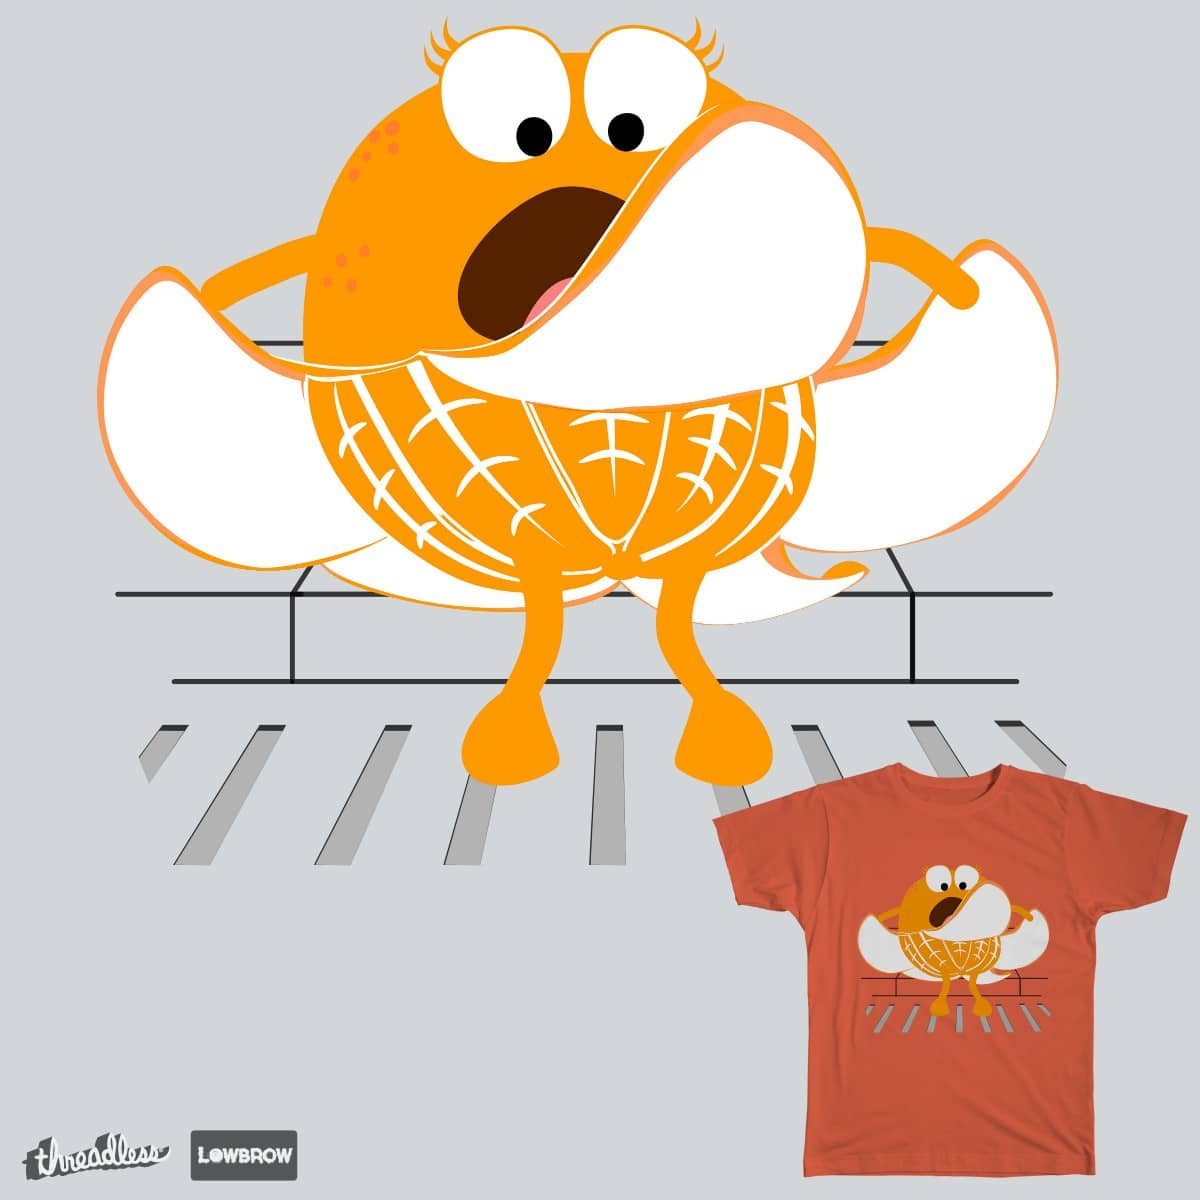 Accidental Seven-Year Itch by OneWeirdDude on Threadless